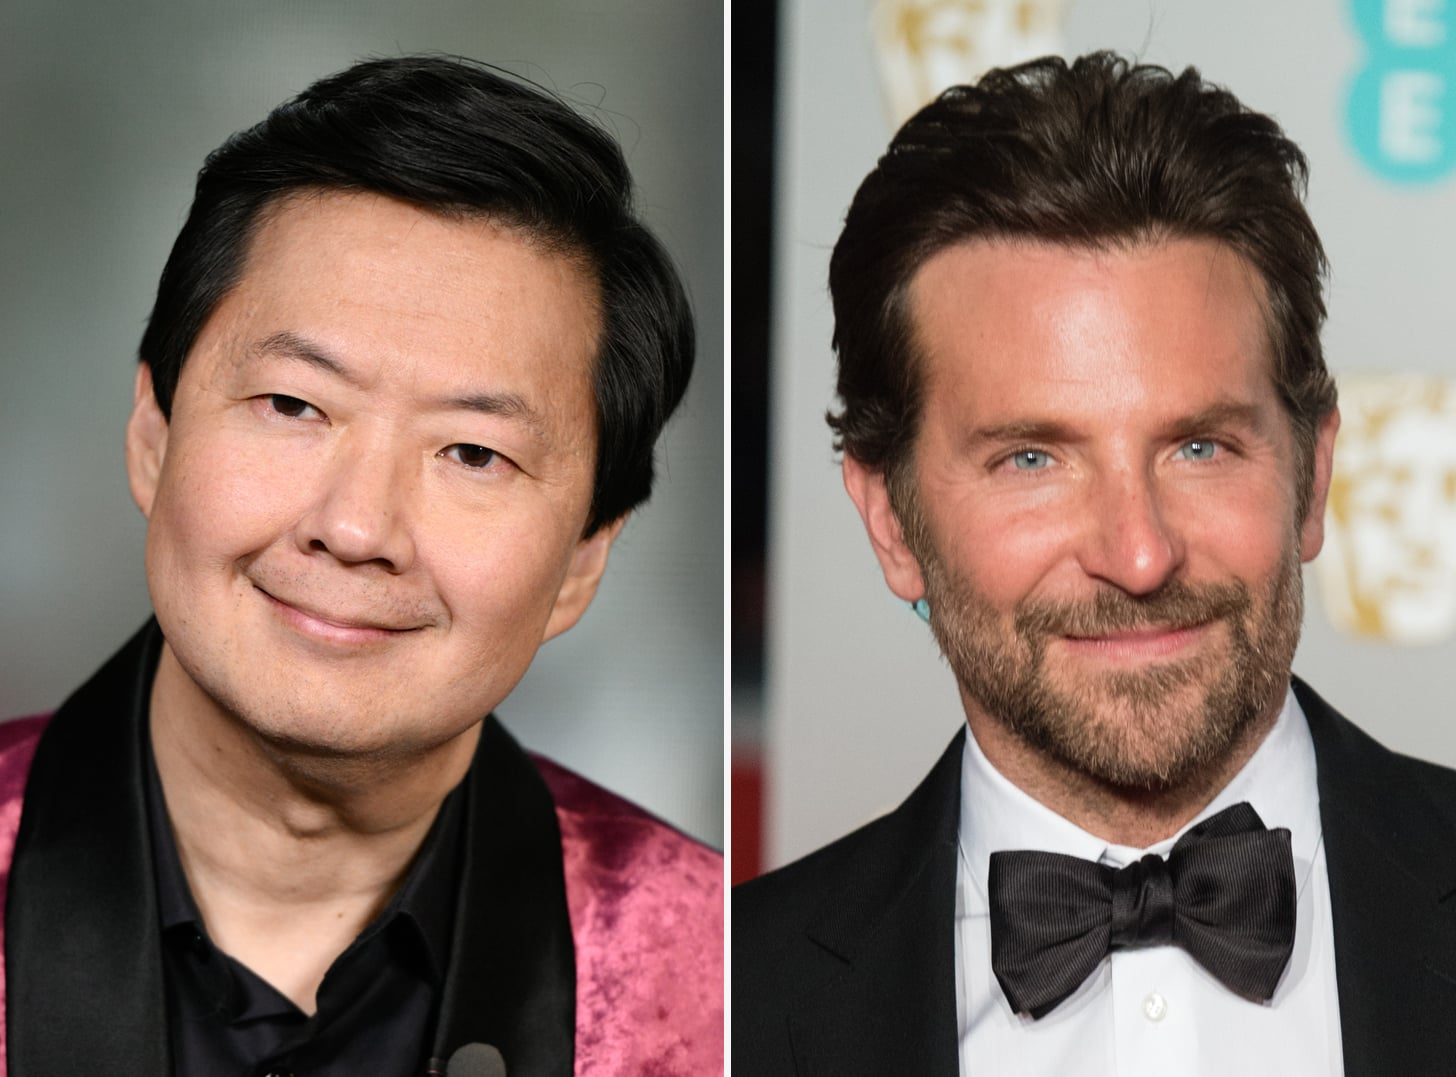 The Heartwarming Way Bradley Cooper Helped Ken Jeong While Filming The Hangover